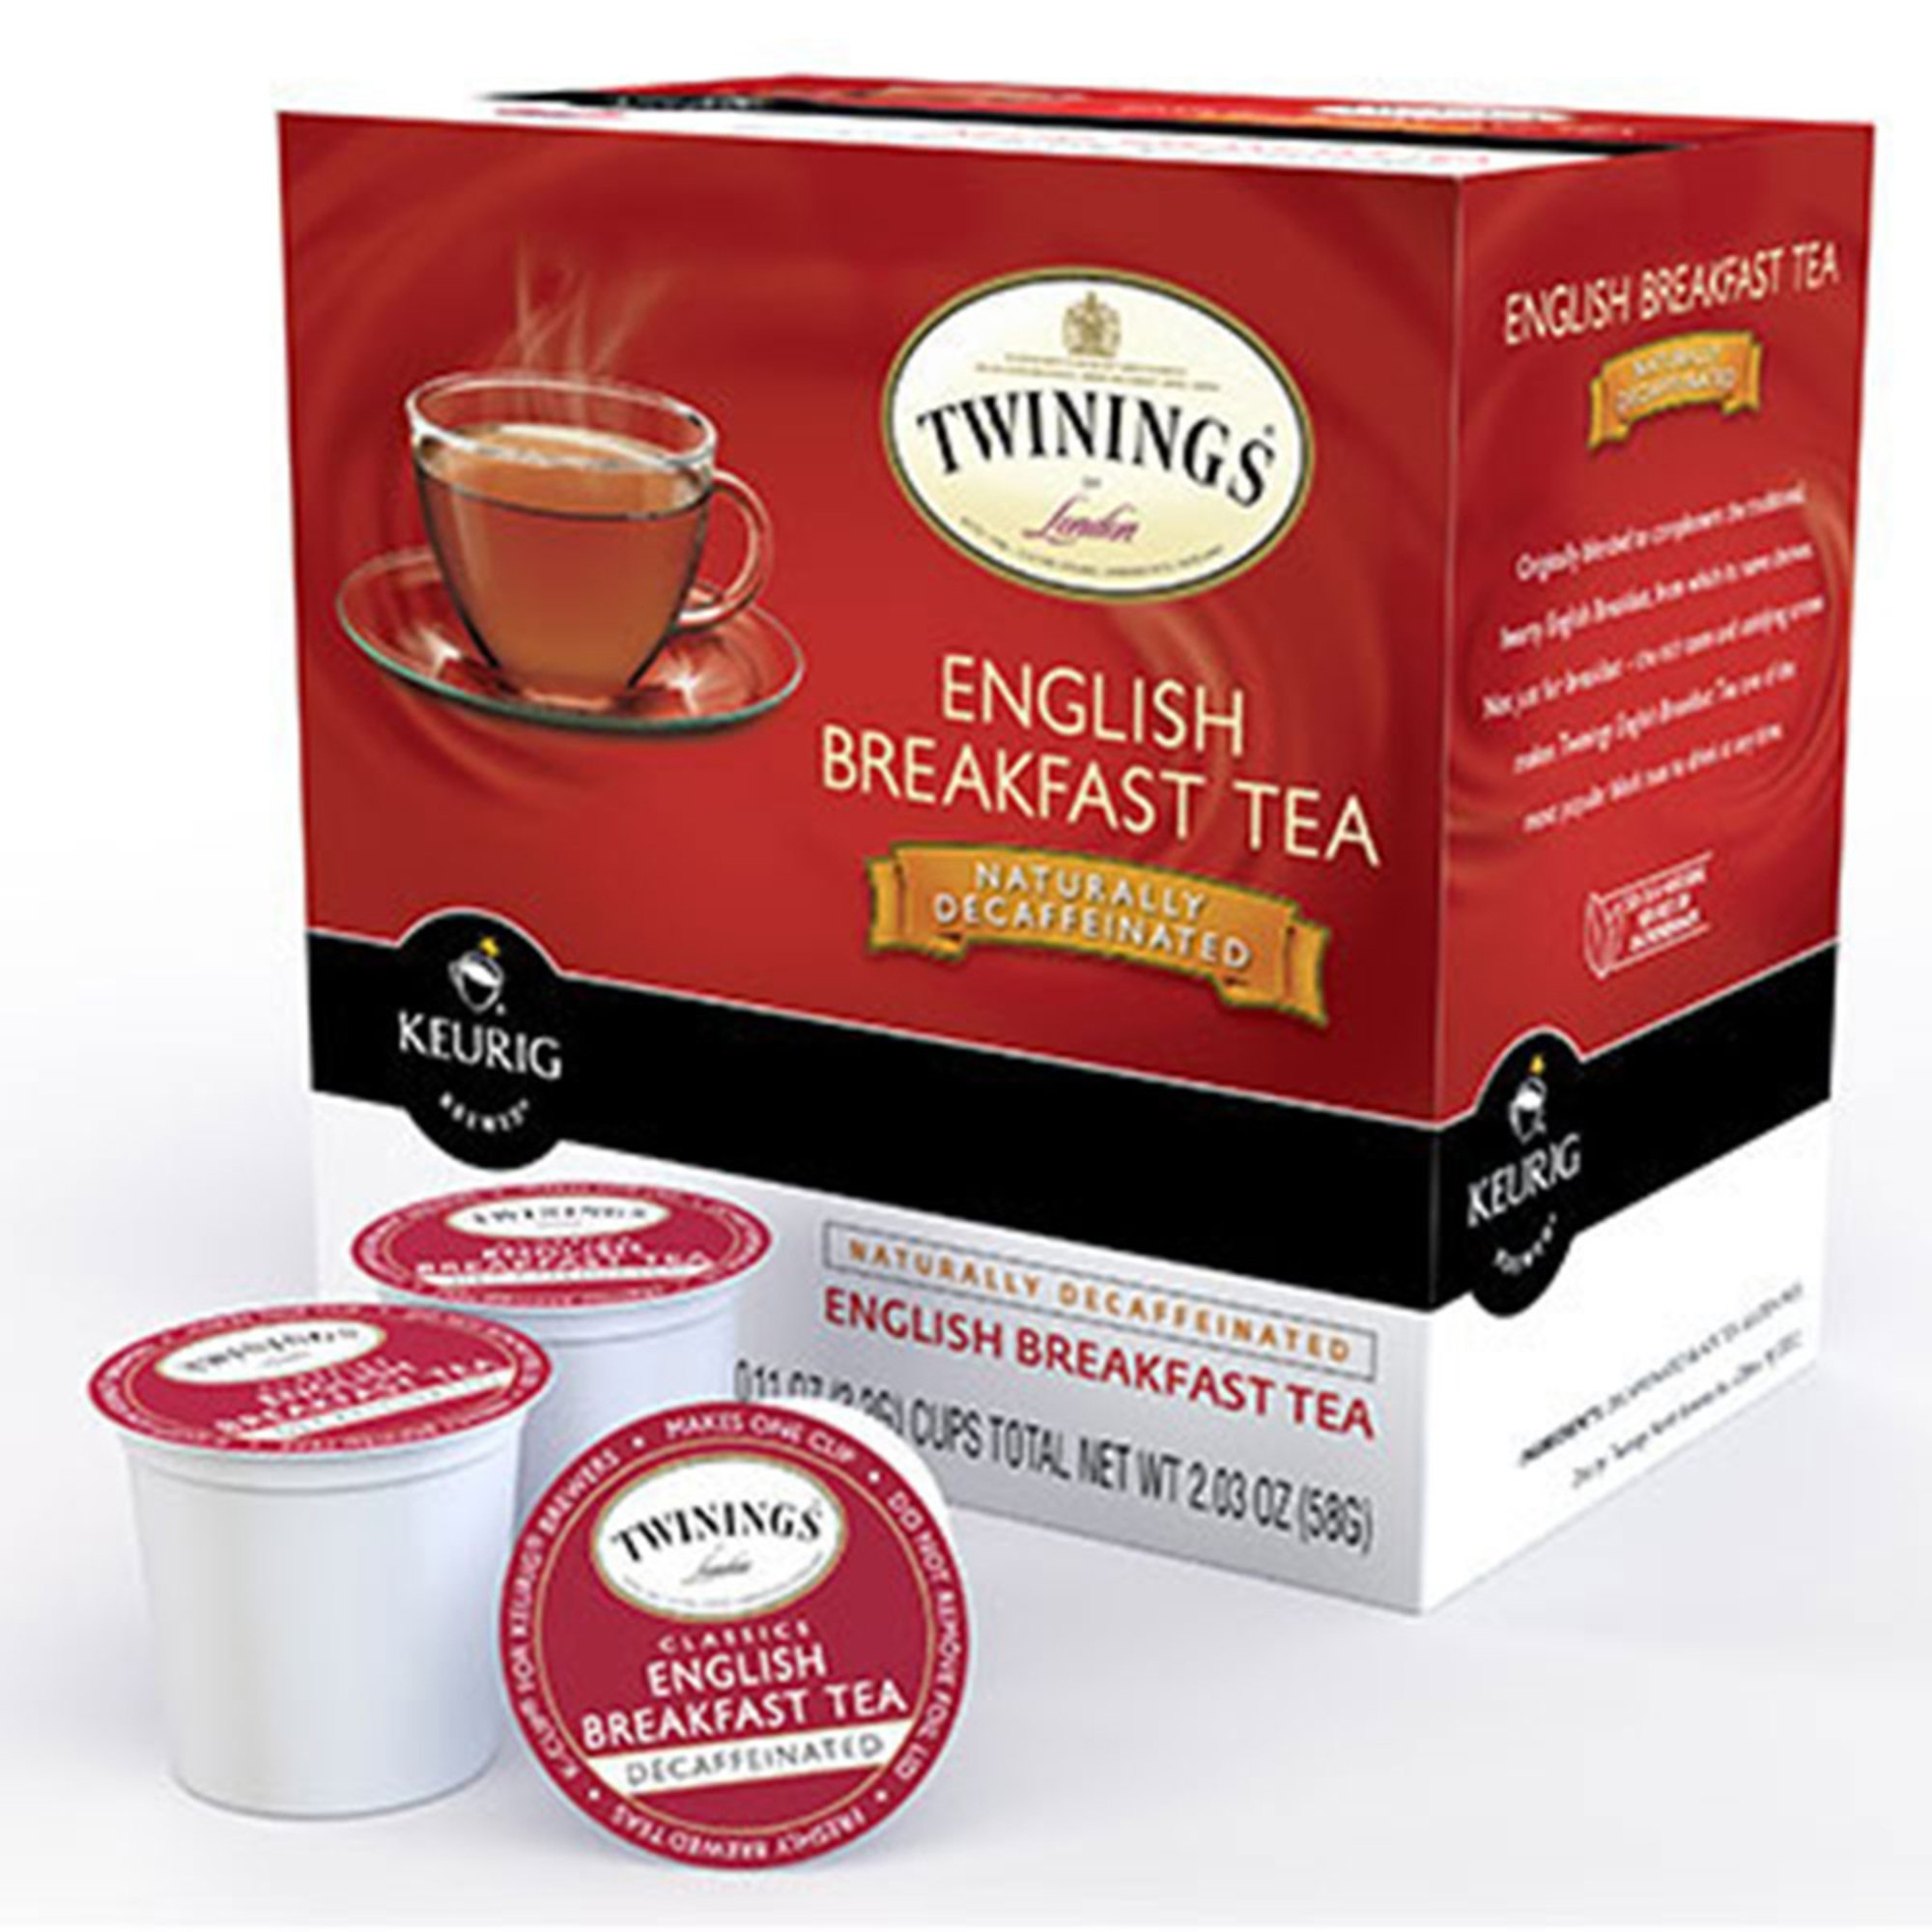 Twinings English Breakfast Tea, Decaf K-cup Pods, 18-count ...